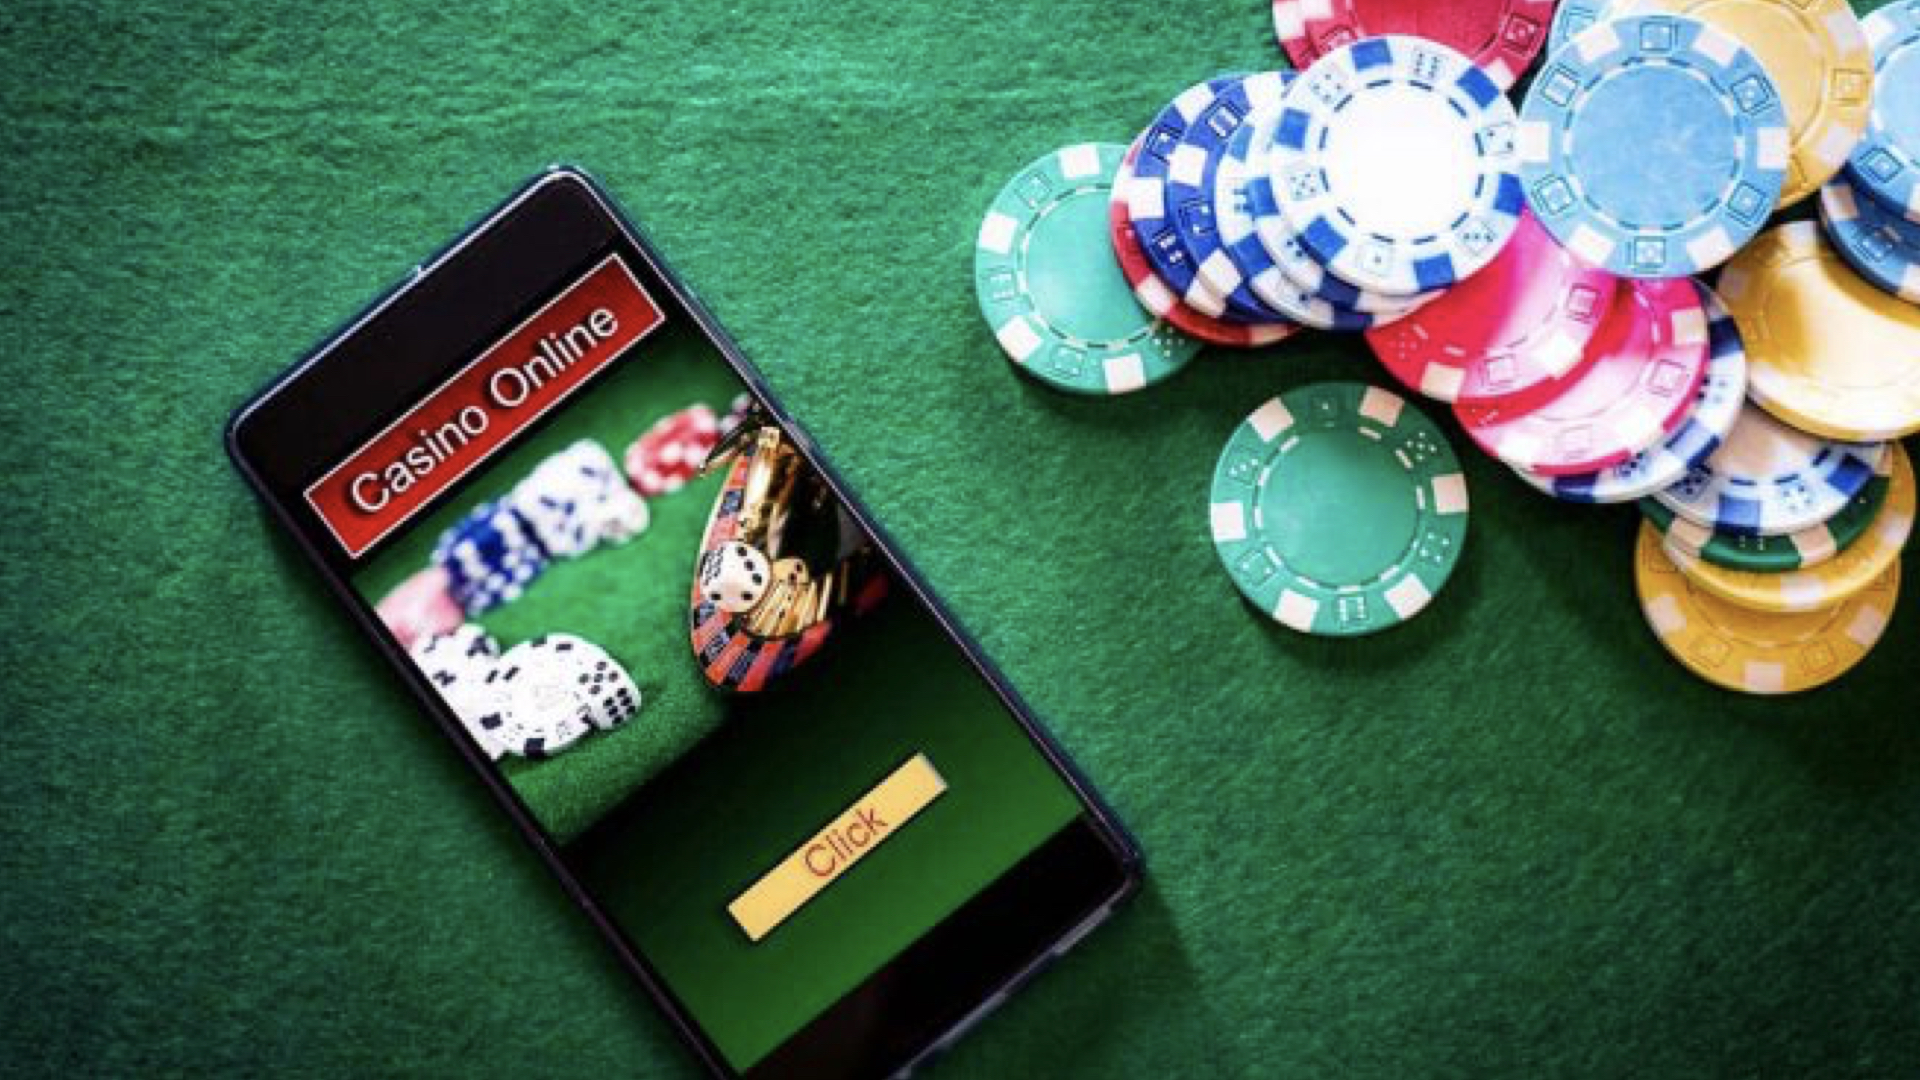 Baccarat Formula Comparison Of Odds Can Be Done To Coin Toss